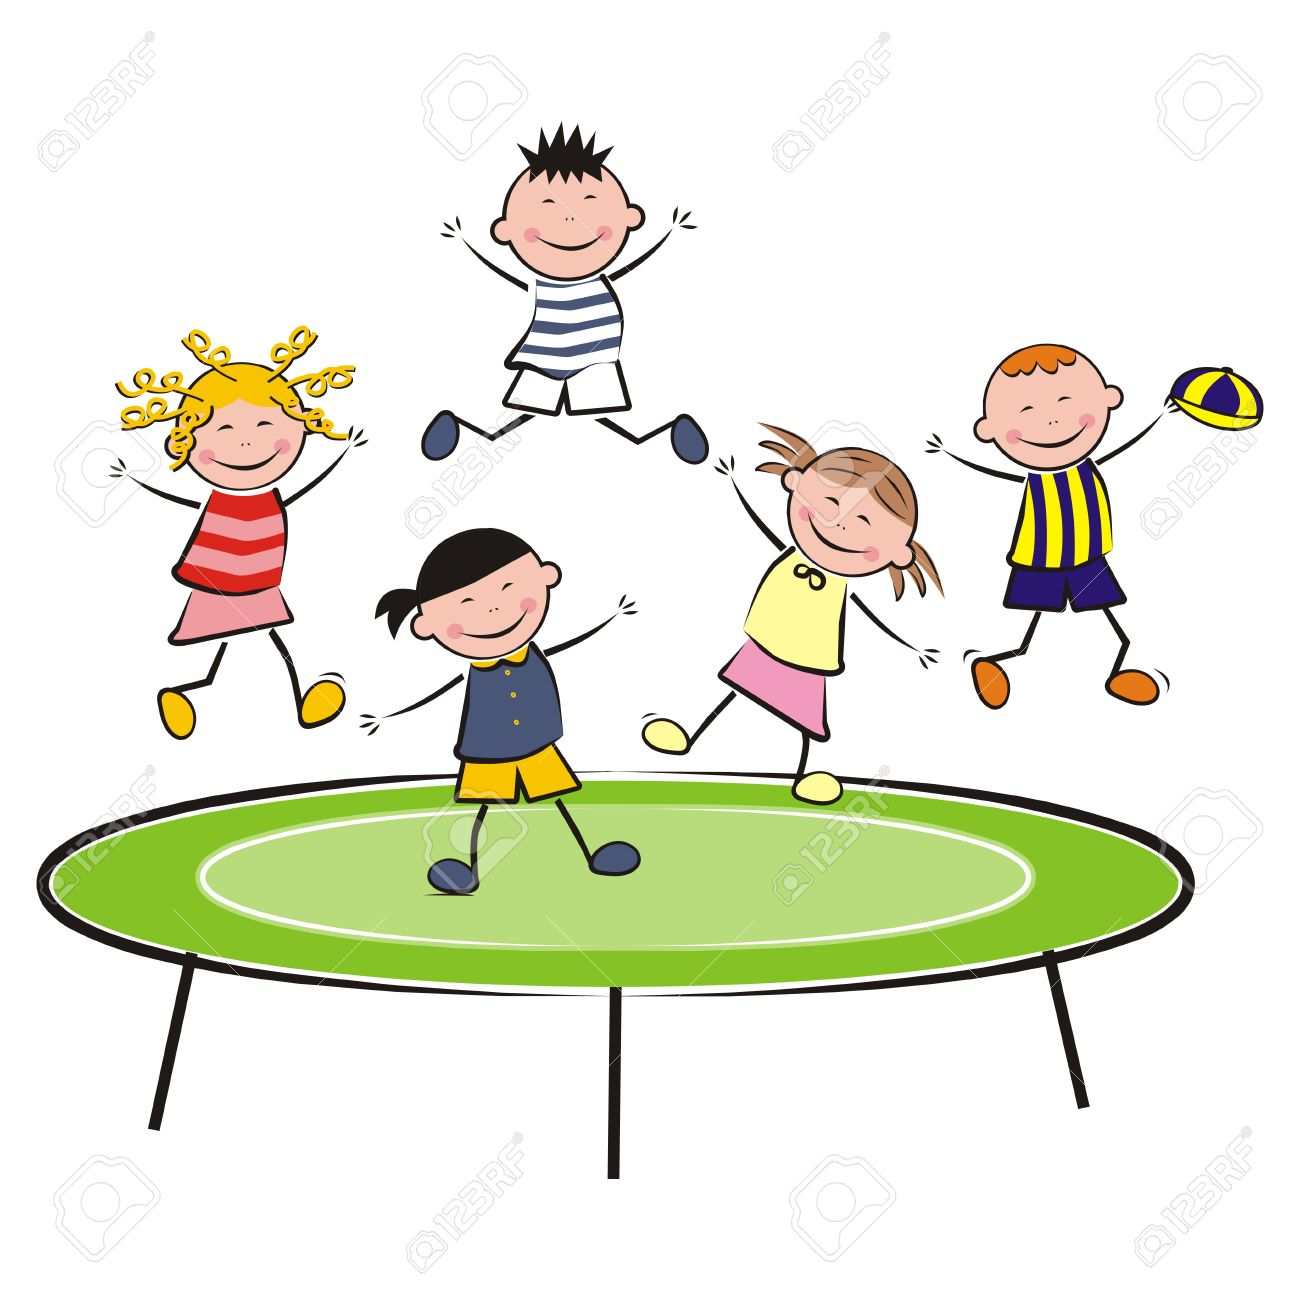 Clipart trampolinist banner black and white library Trampoline Clipart Black And White | Free download best Trampoline ... banner black and white library